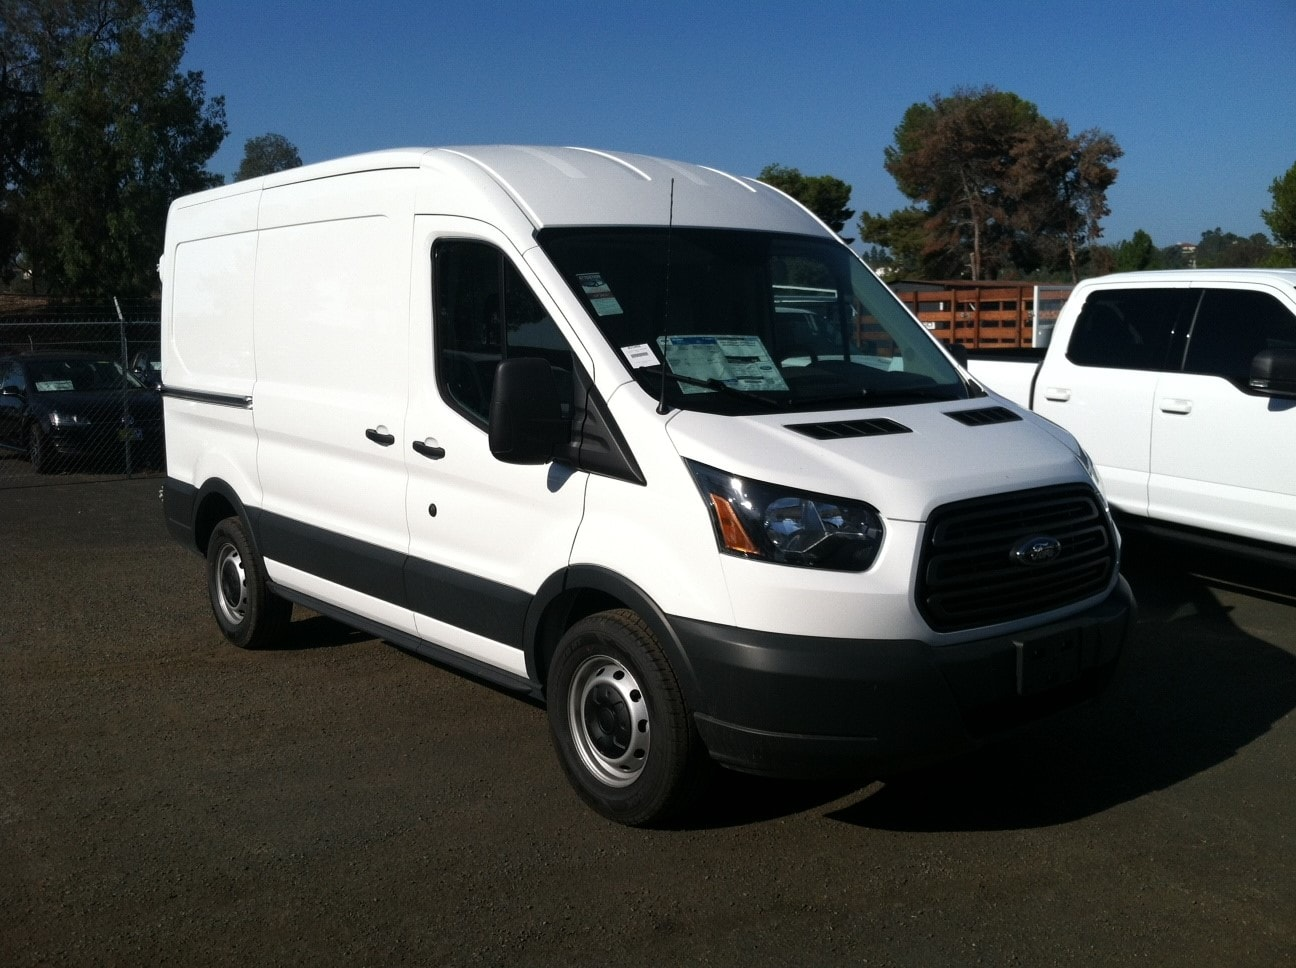 Encinitas Ford Commercial Trucks Encinitas Ford